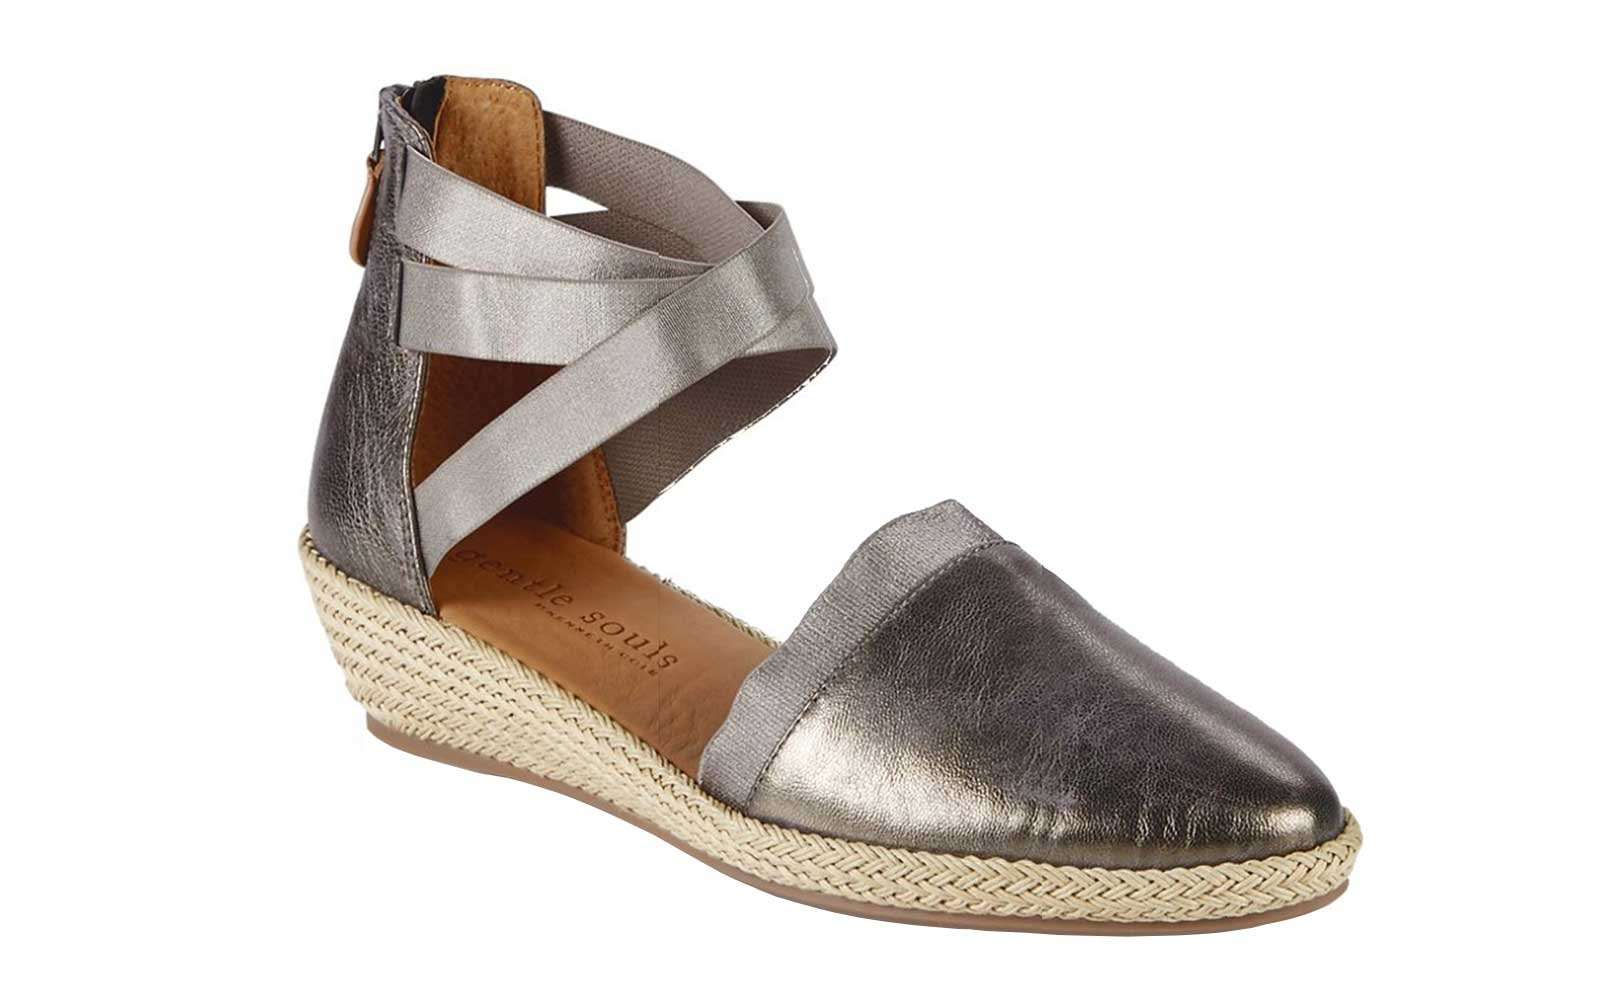 Metallic wedges from Gentle Souls by Kenneth Cole